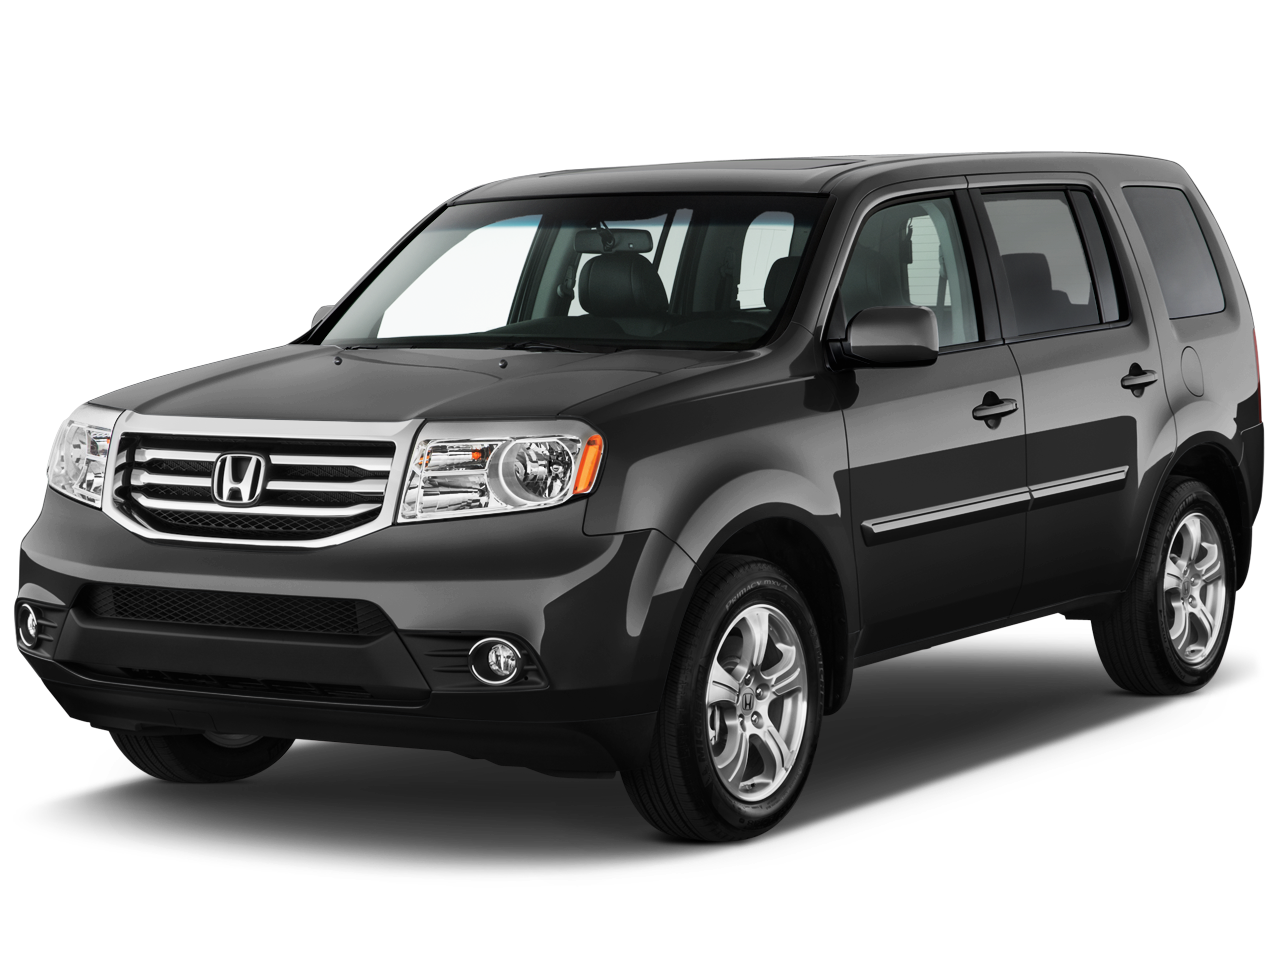 used one owner 2014 honda pilot touring near watertown sd sharp automotive. Black Bedroom Furniture Sets. Home Design Ideas